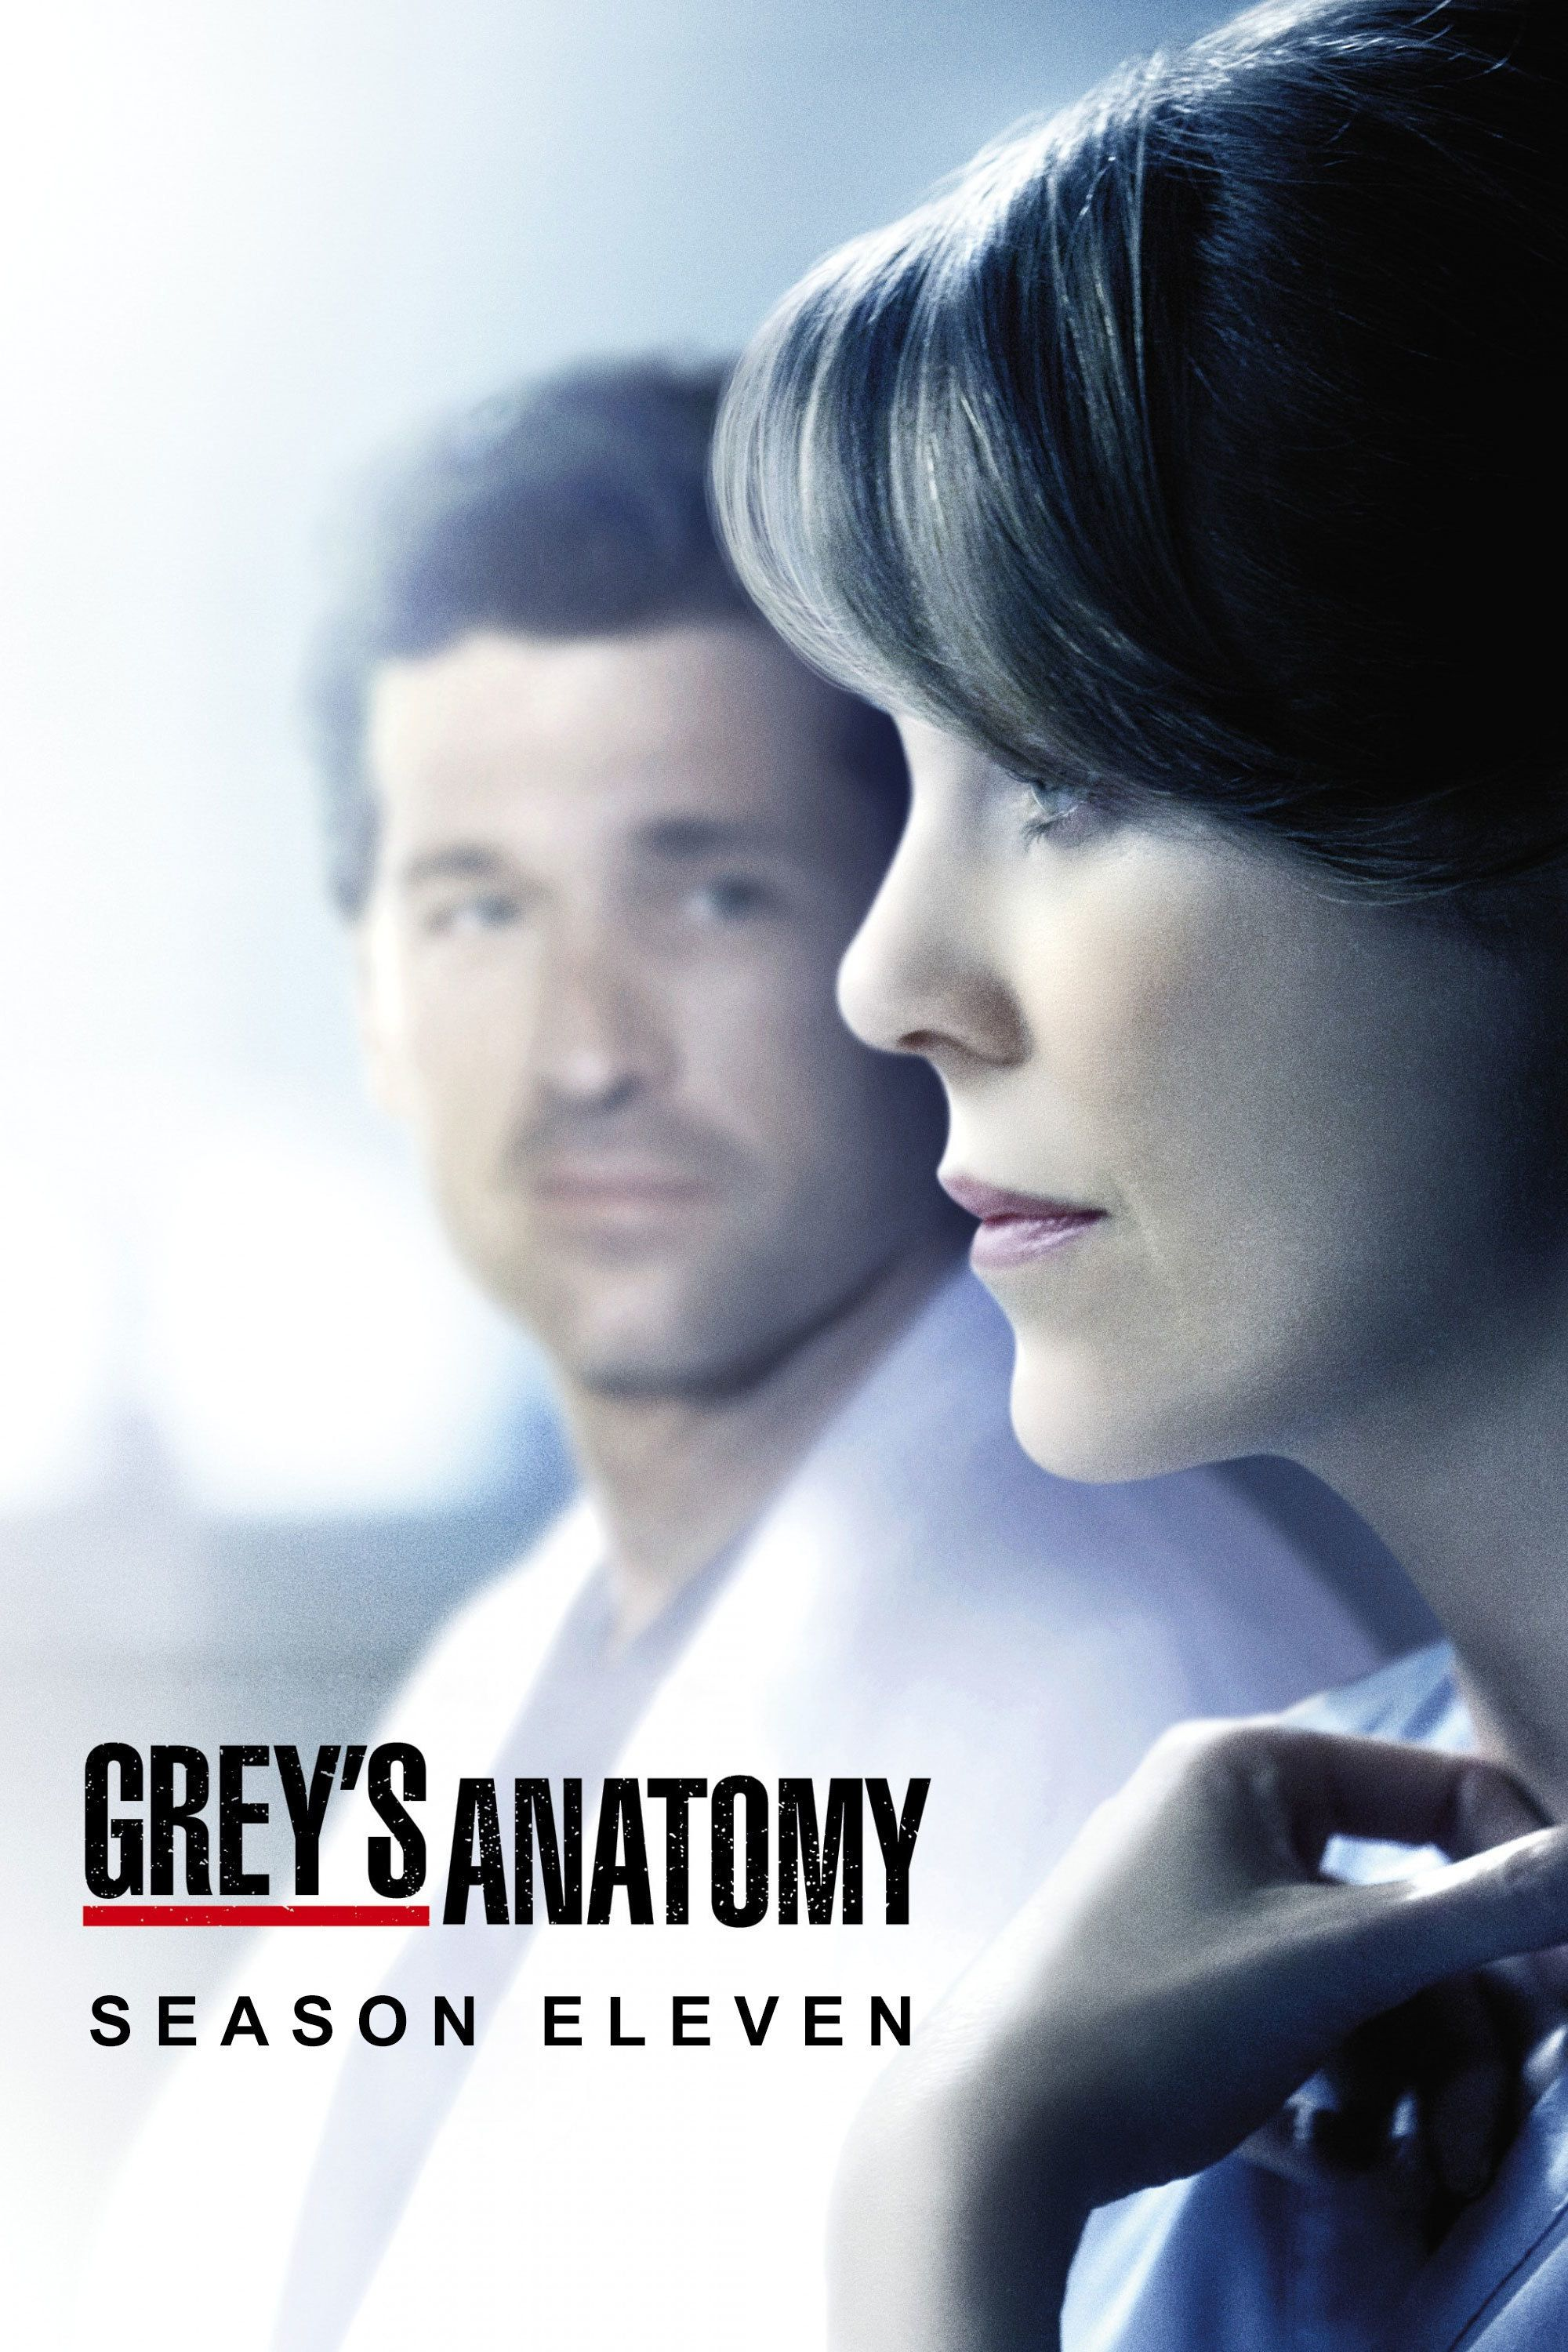 Pin by Ida on Grays anatomy | Pinterest | Anatomy, Grays anatomy and ...